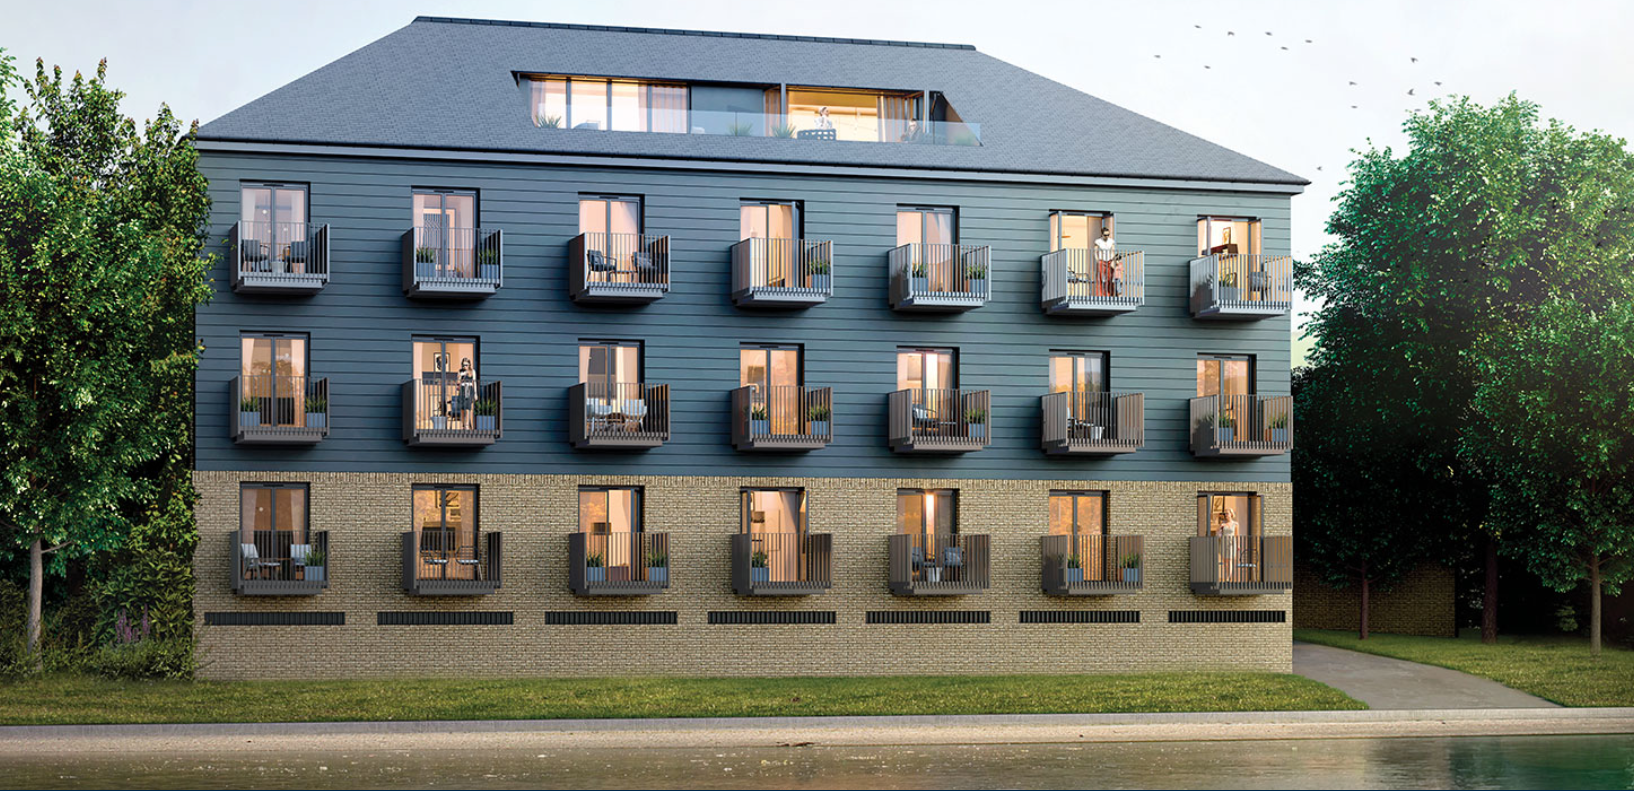 The Boat Race House Residential Property Investment in London